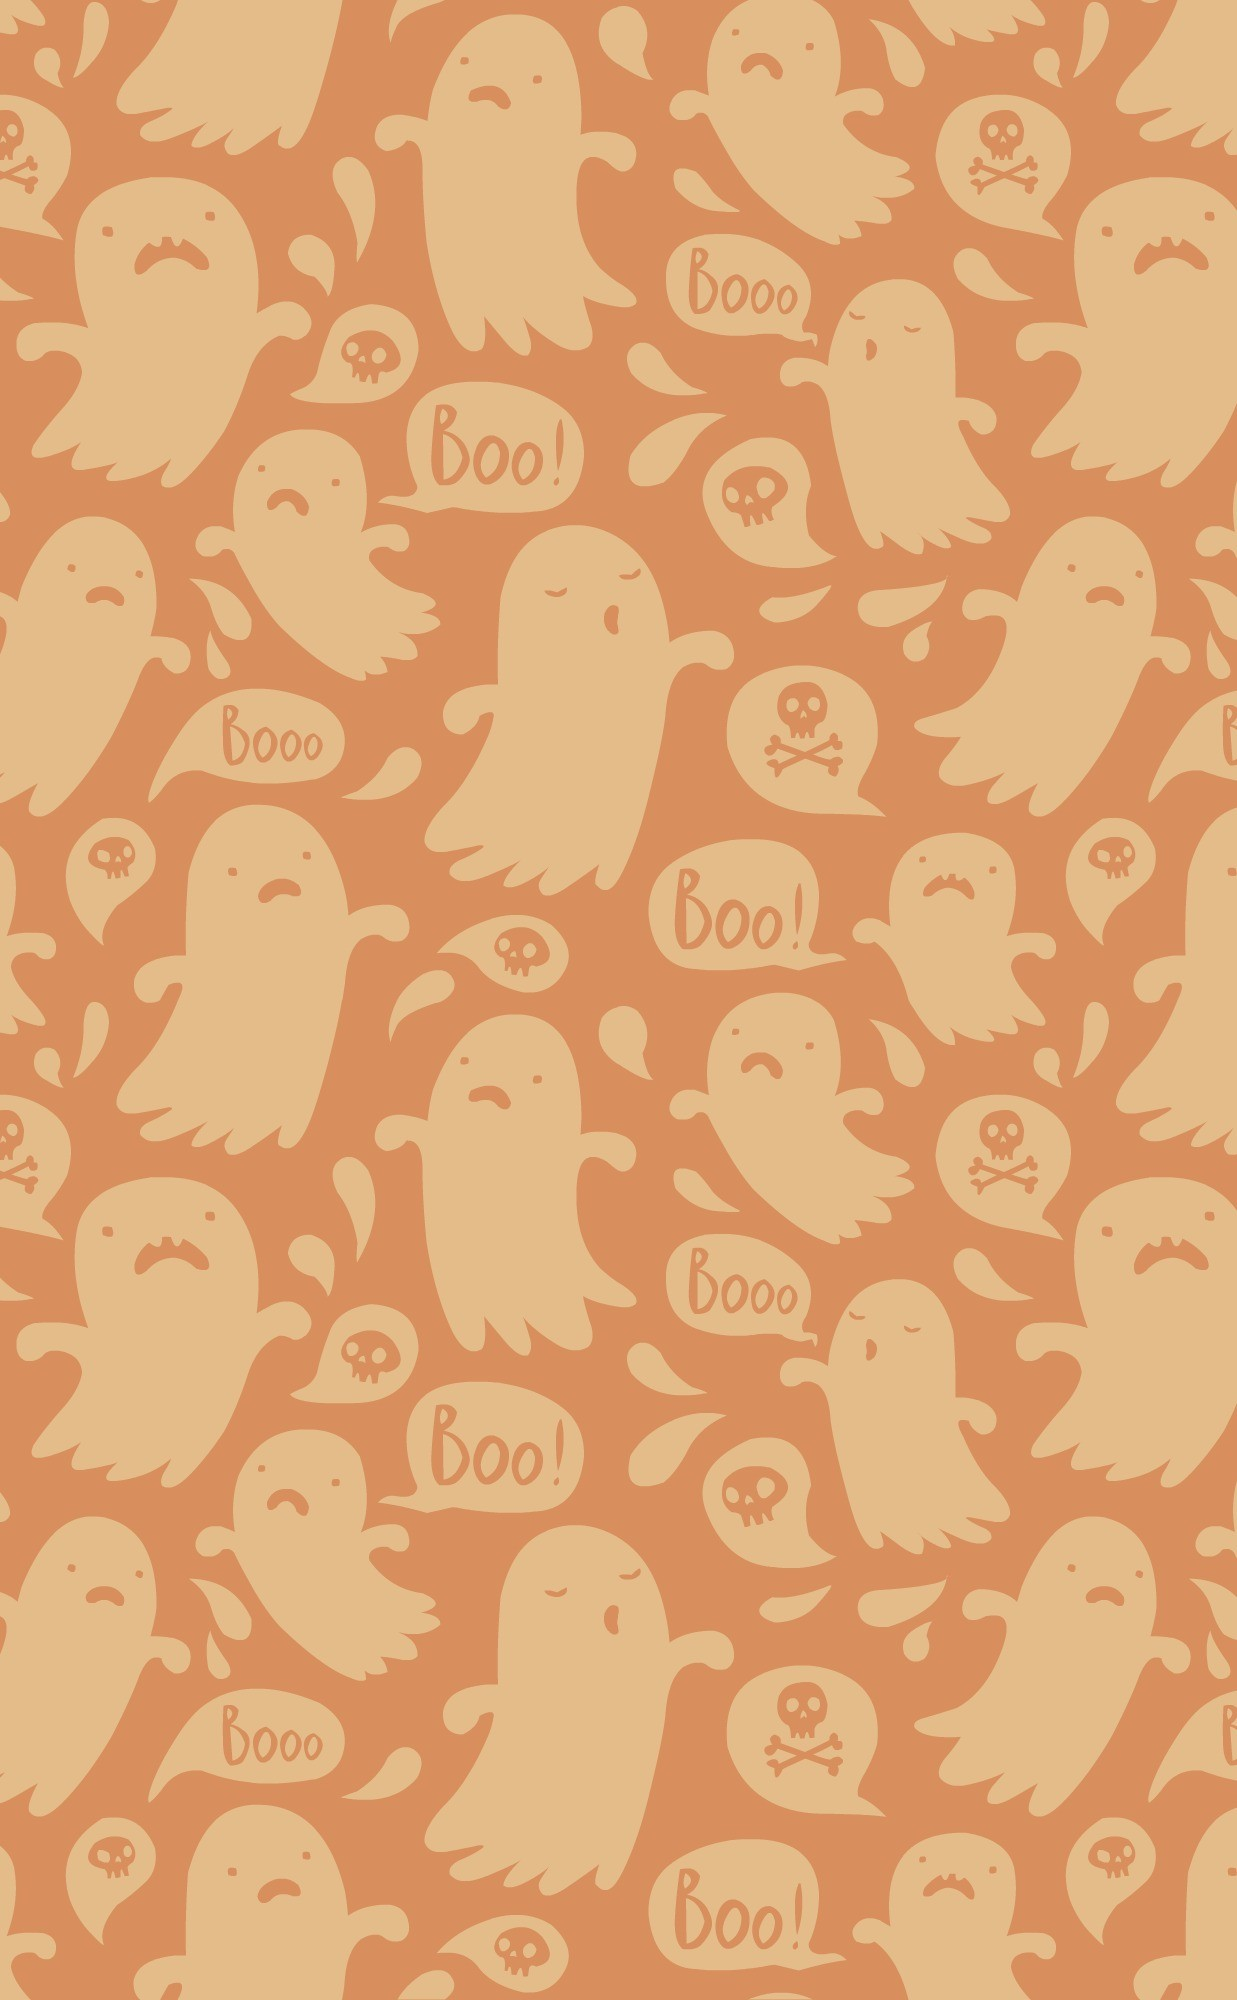 Halloween Iphone Wallpapers From Tumblr – Festival Collections